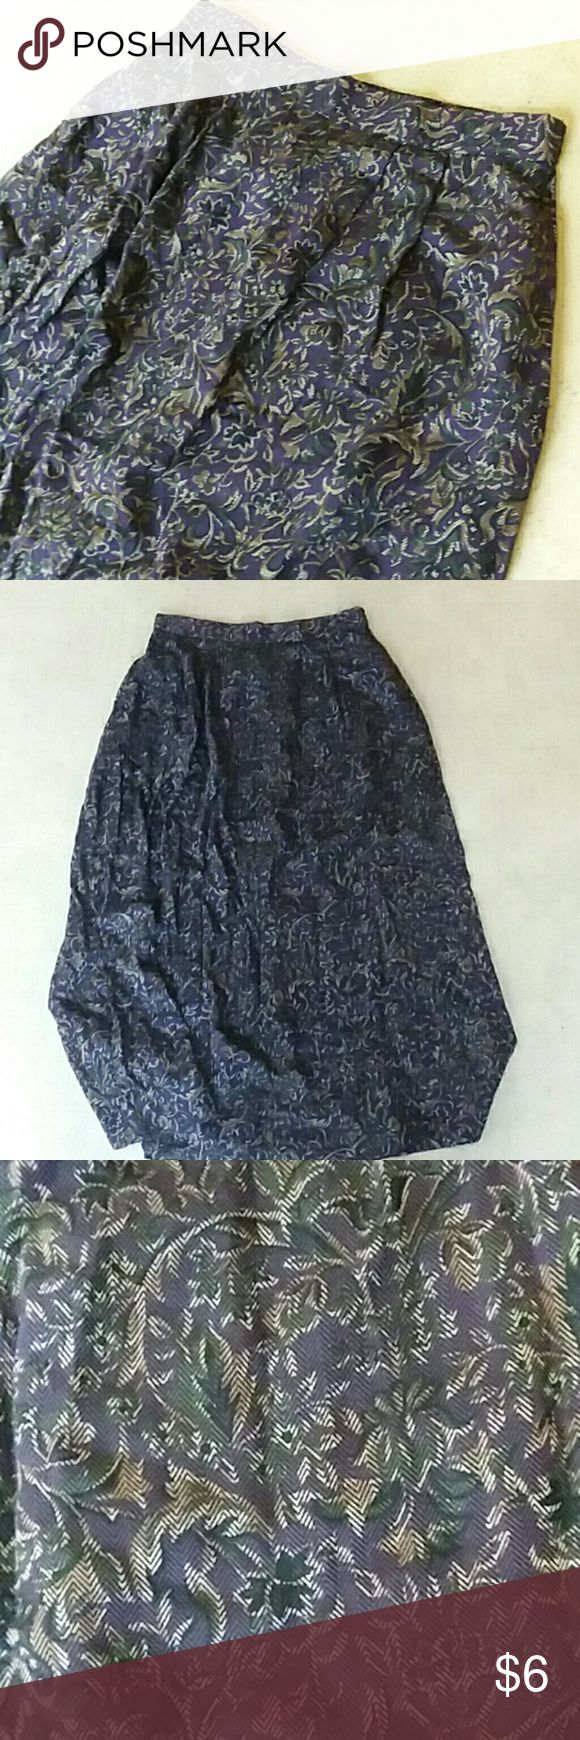 Jaclyn Smith petite long pleated skirt 5 Jaclyn Smith Petite size 5 long skirt. Is a dark purple with green and gold design. Has stretchy waist. In excellent condition Jaclyn Smith Skirts